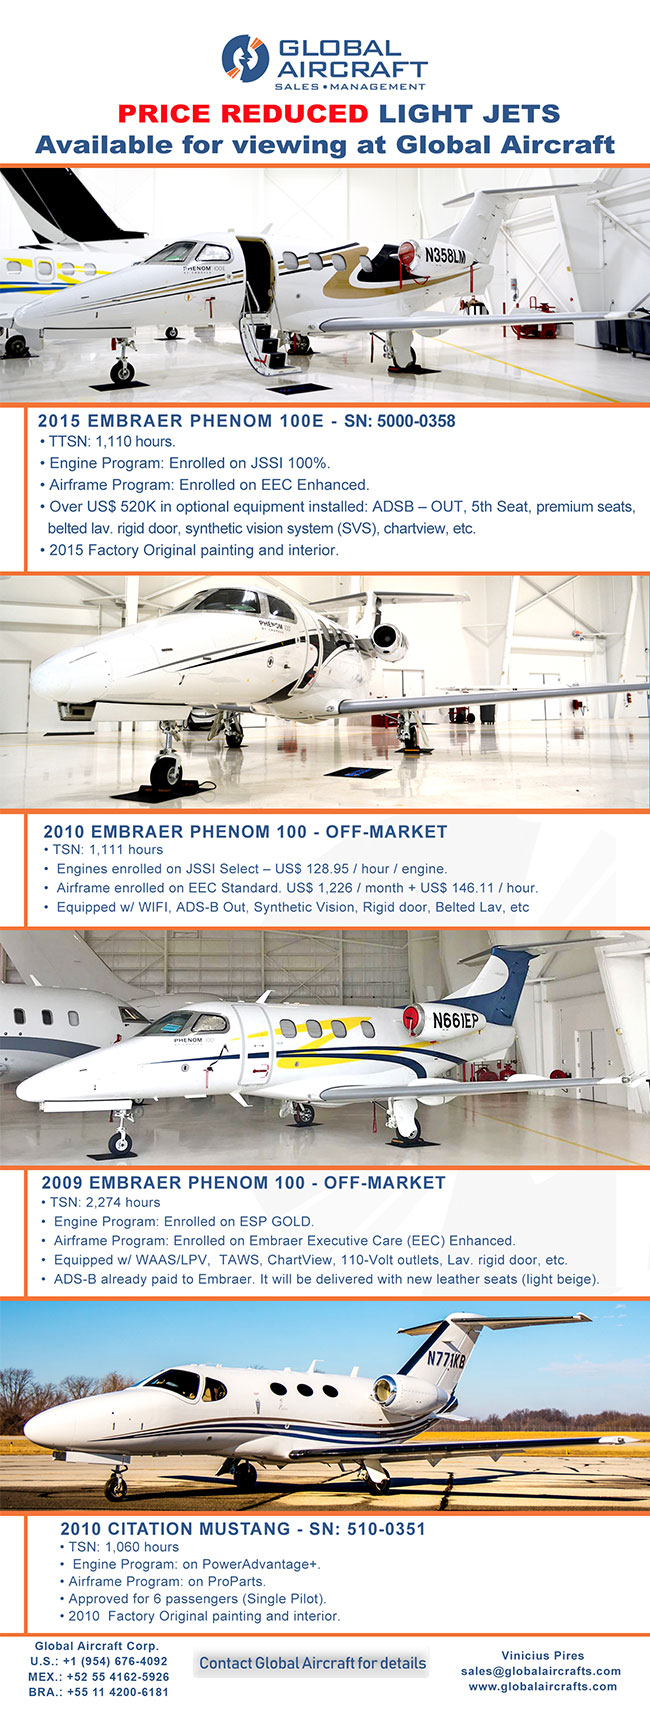 Global Aircraft | Price Reduced! 4 Amazing Jets for Sale | 2015 Embraer Phenom 100E • 2010 Embraer Phenom 100 • 2009 Embraer Phenom 100 • 2010 Citation Mustang